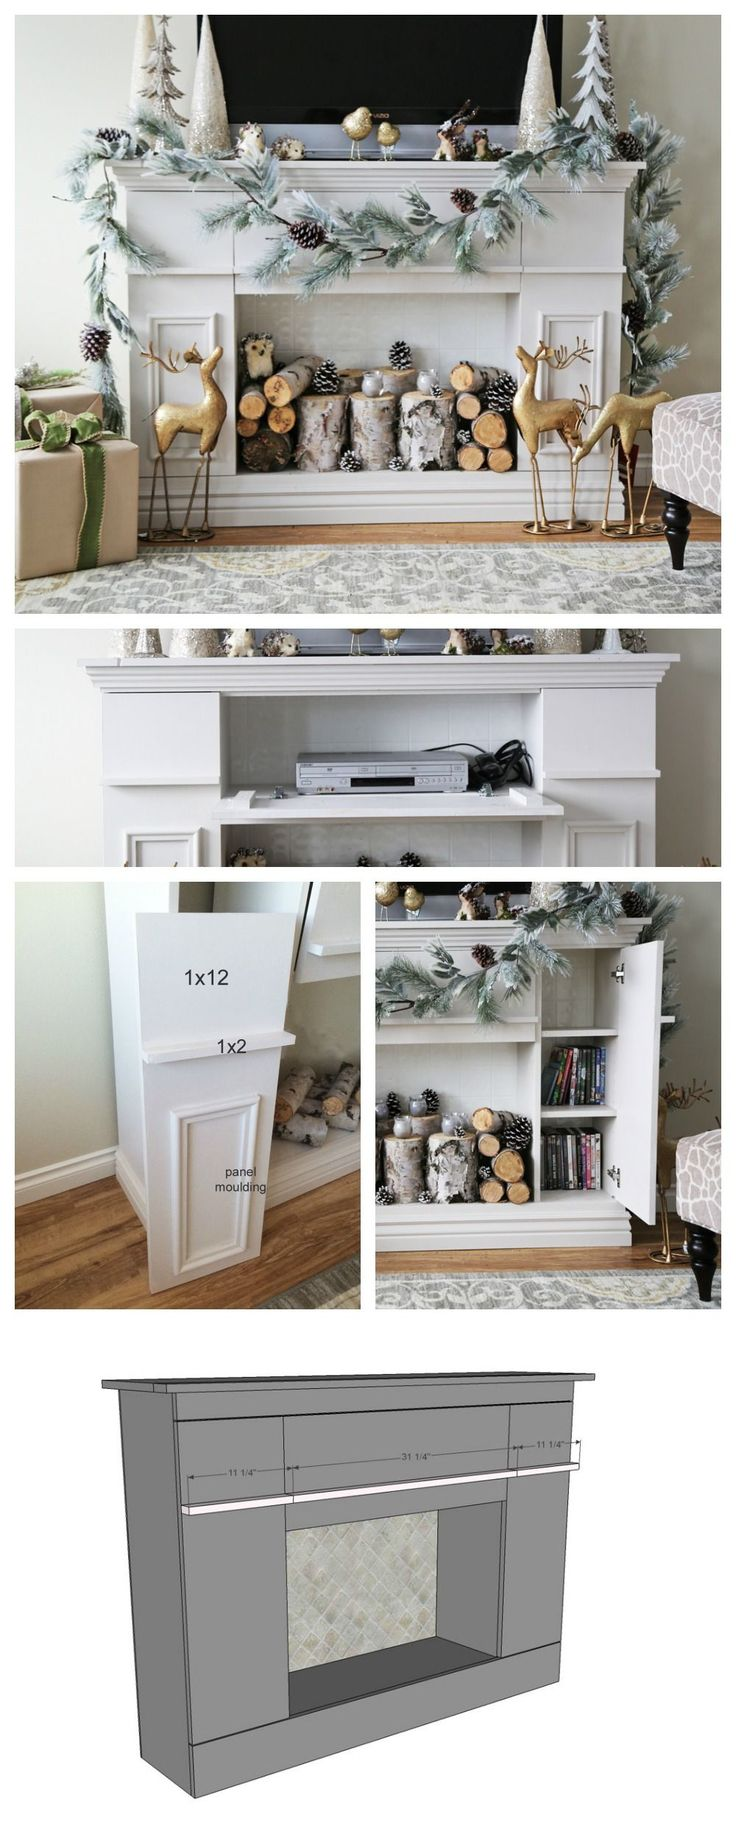 Ana White | Build a Faux Fireplace Mantle with Hidden Storage Cabinets | Free and Easy DIY Project and Furniture Plans